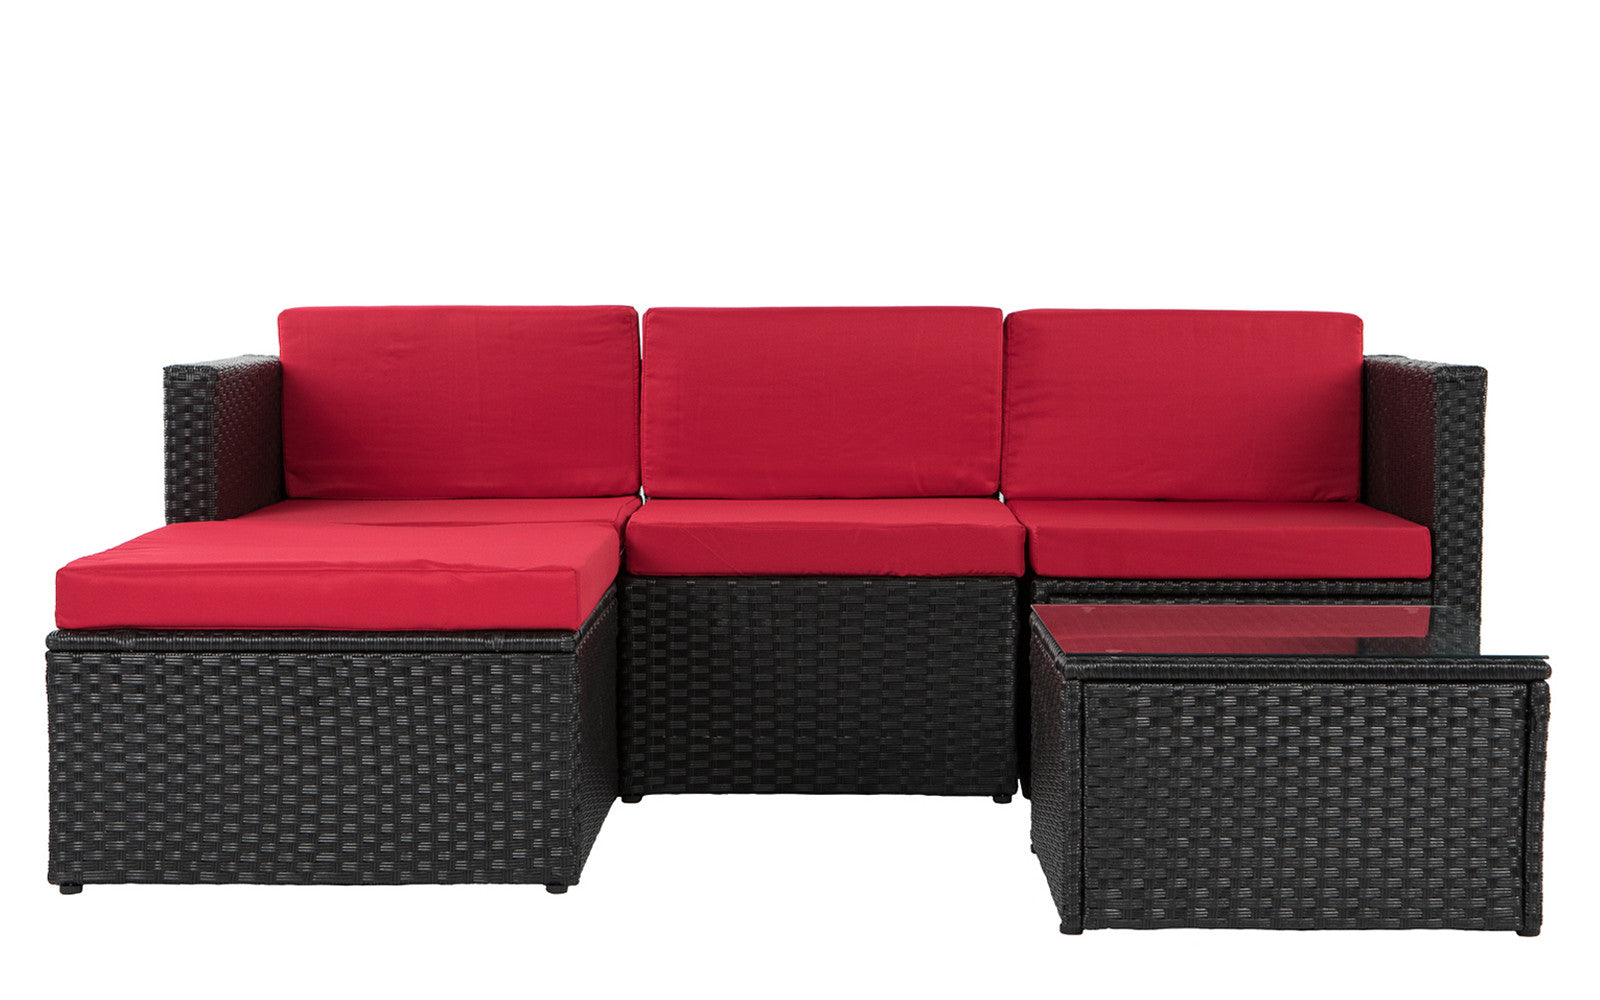 Kilauea Modern Small Sectional With Coffee Table In Red Black ...